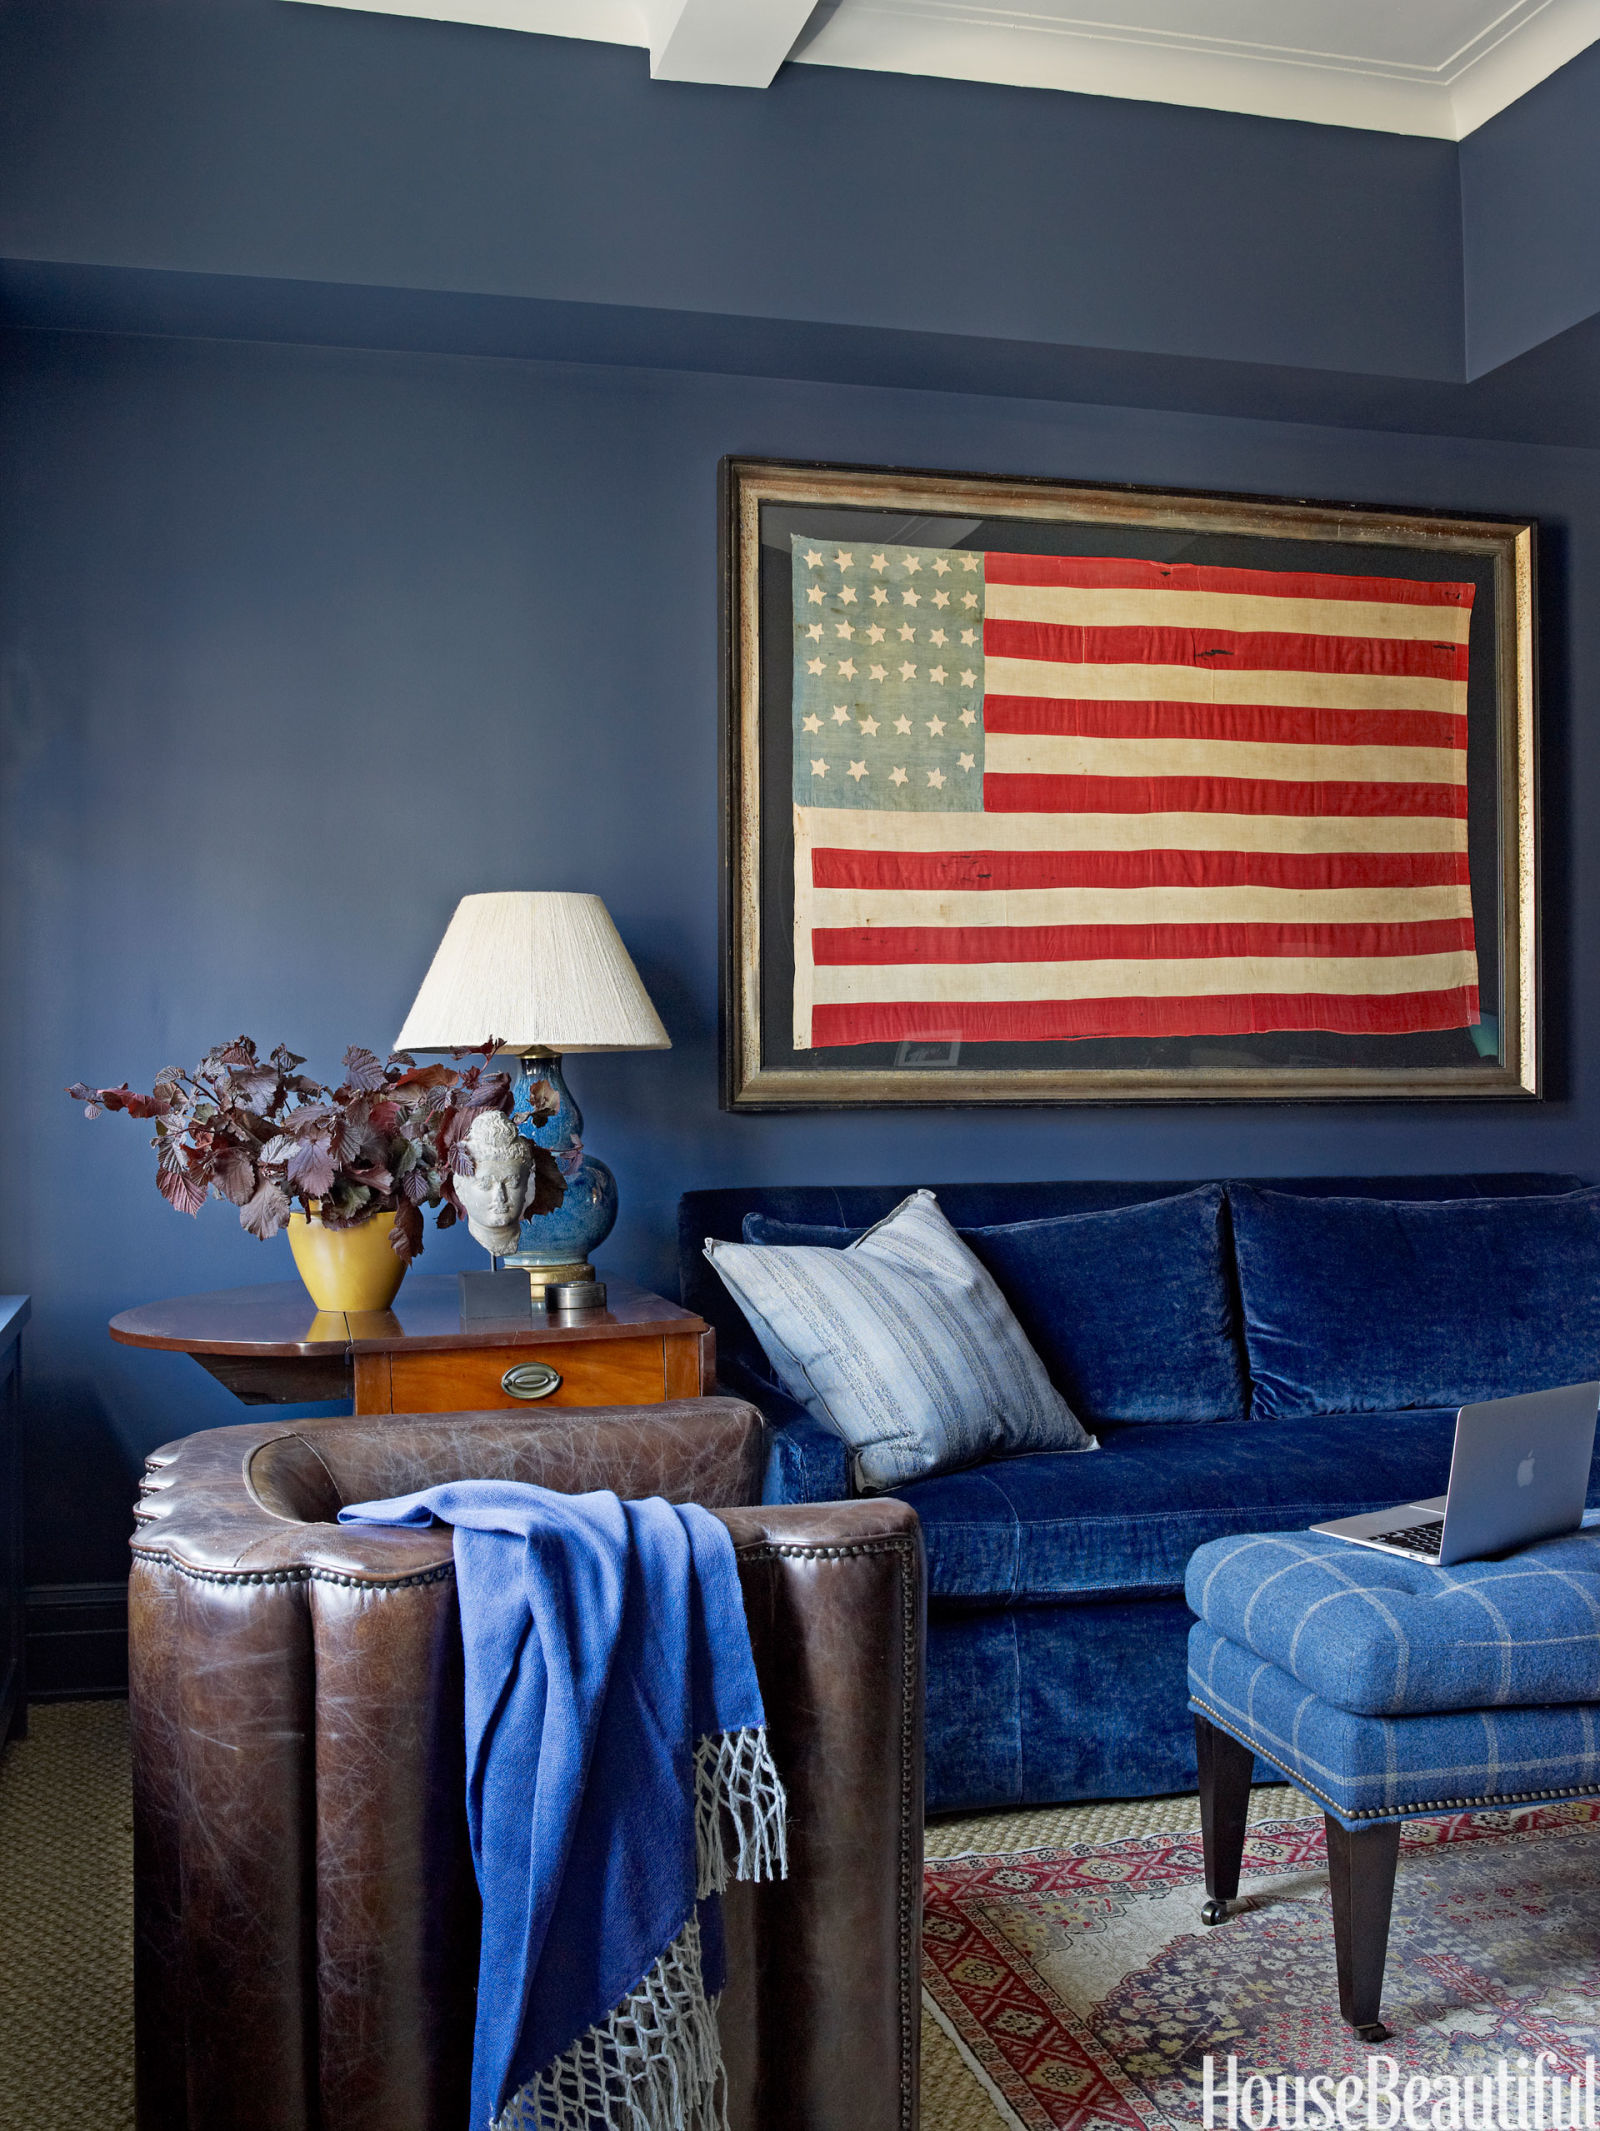 patriotic decor for 4th of july - red, white, and blue decorating